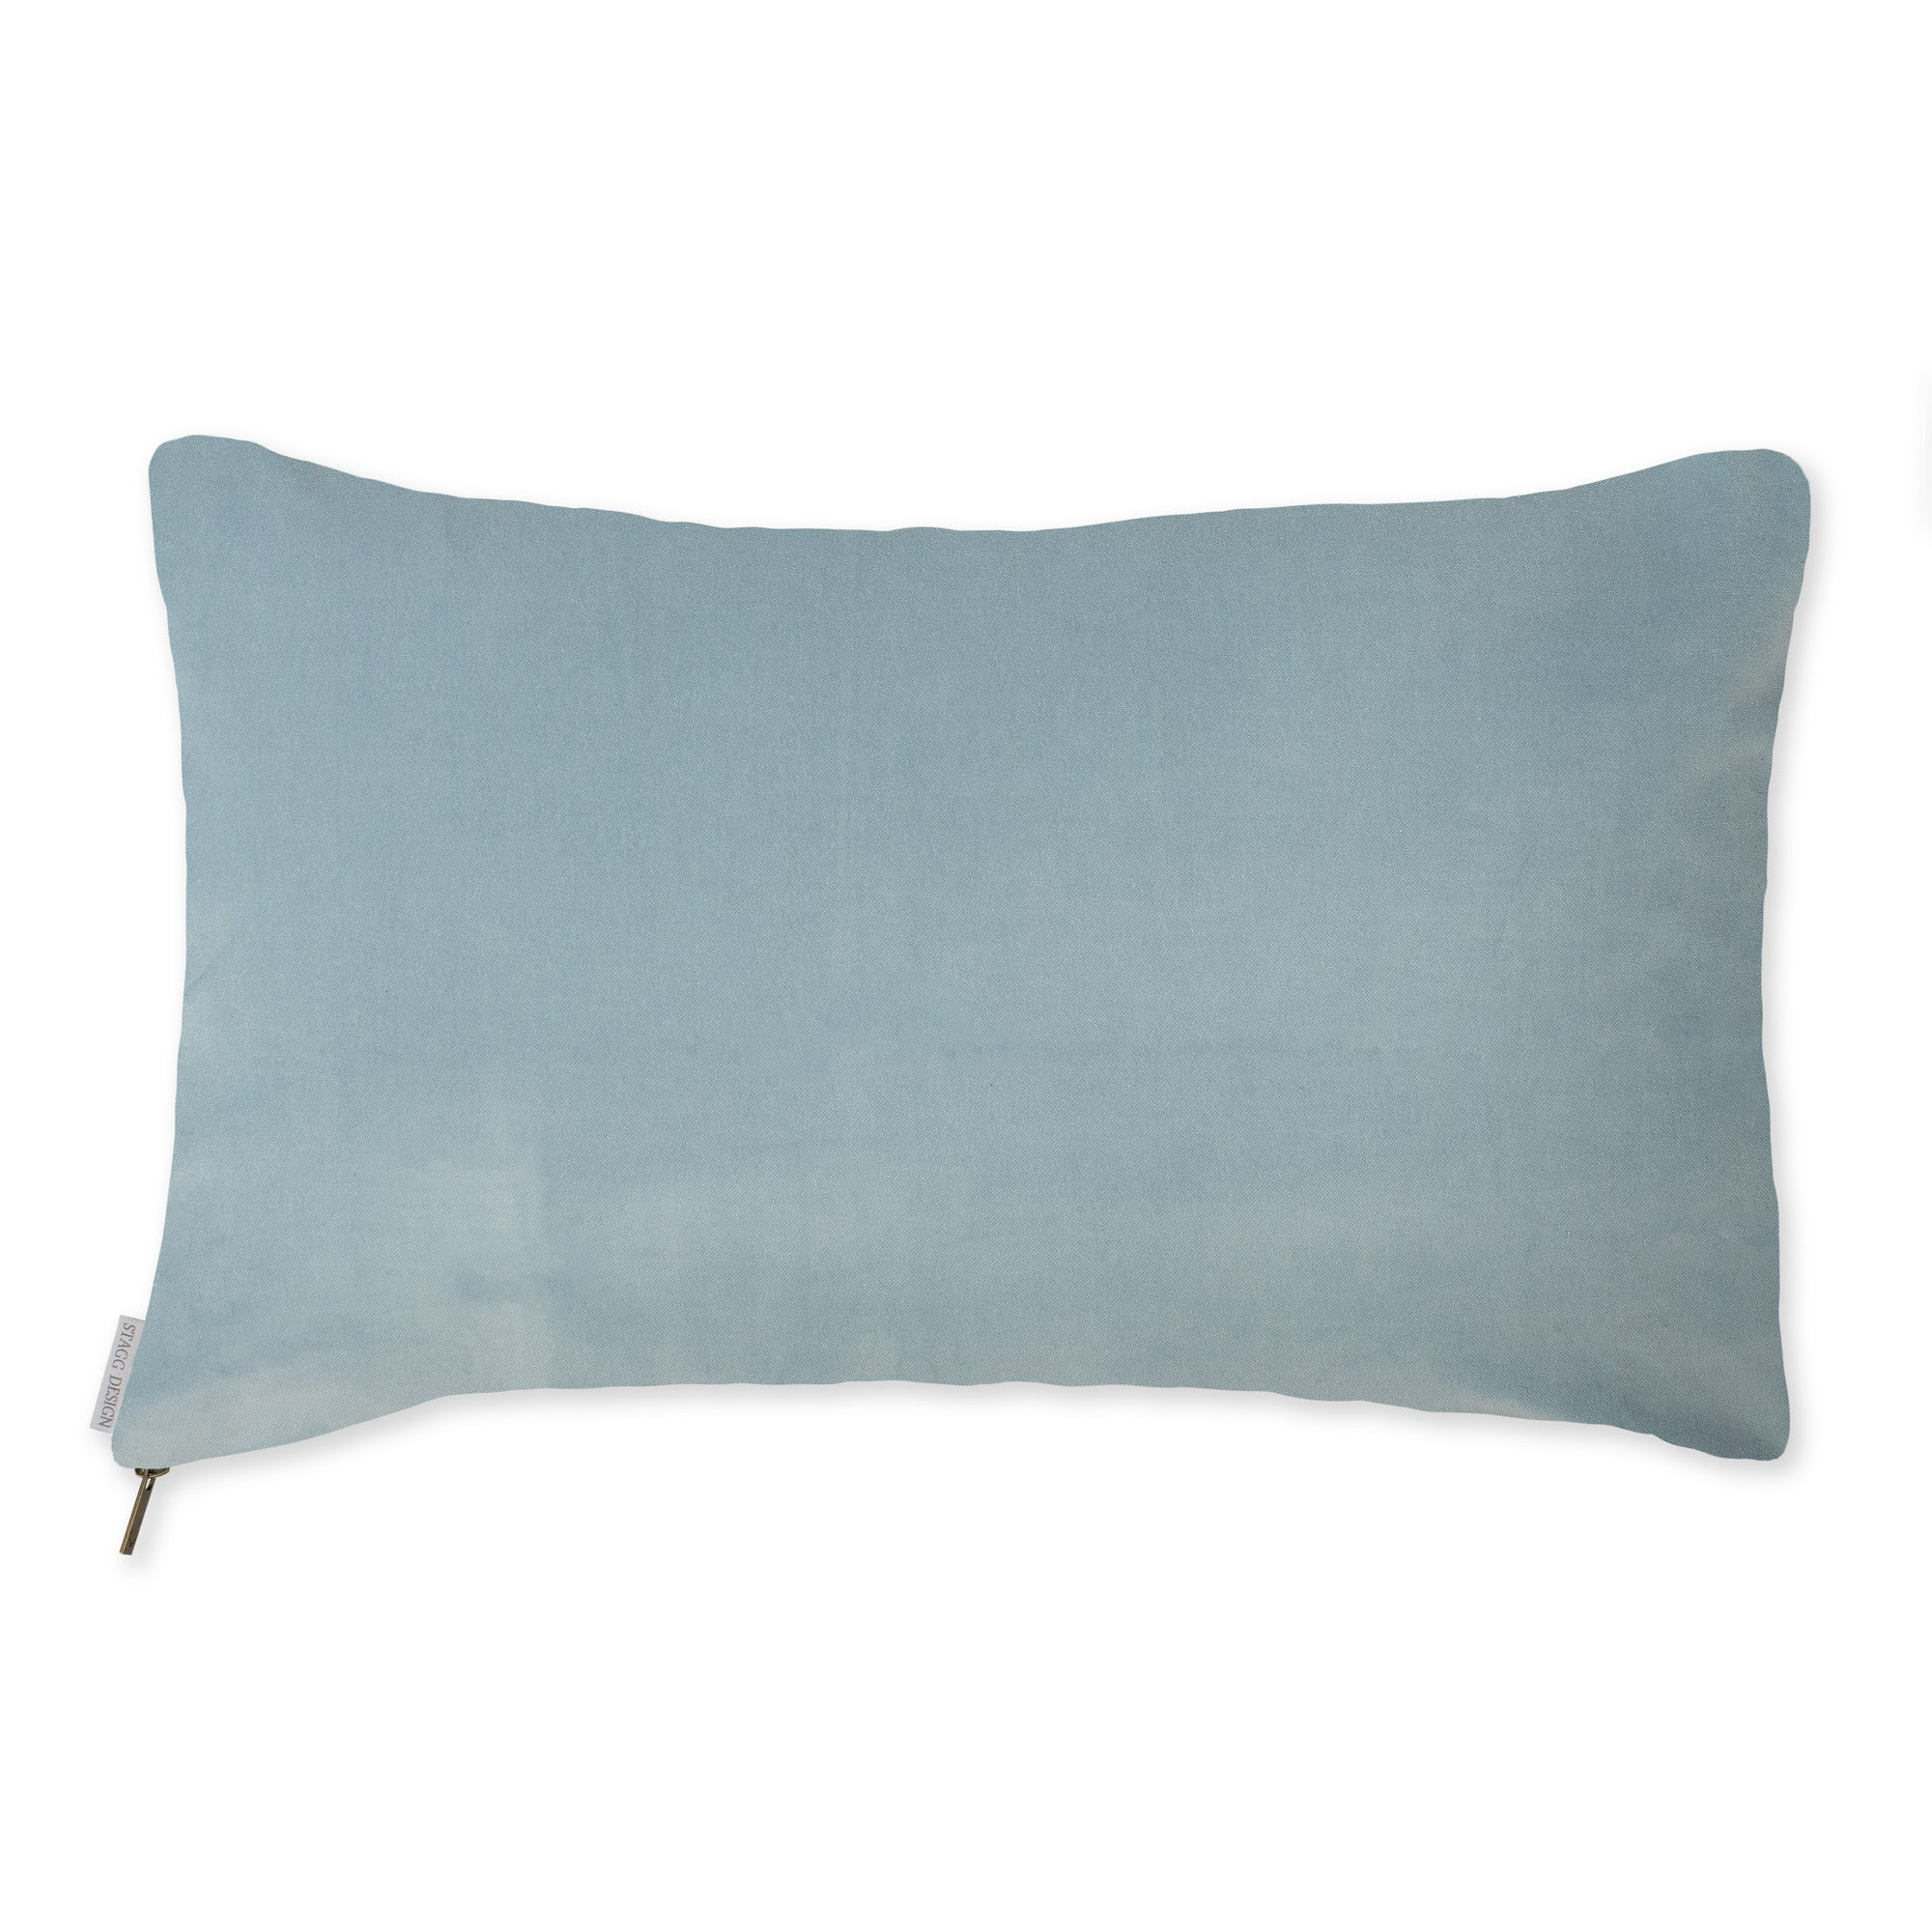 Indigo Pillow Pairing (Set of 5)